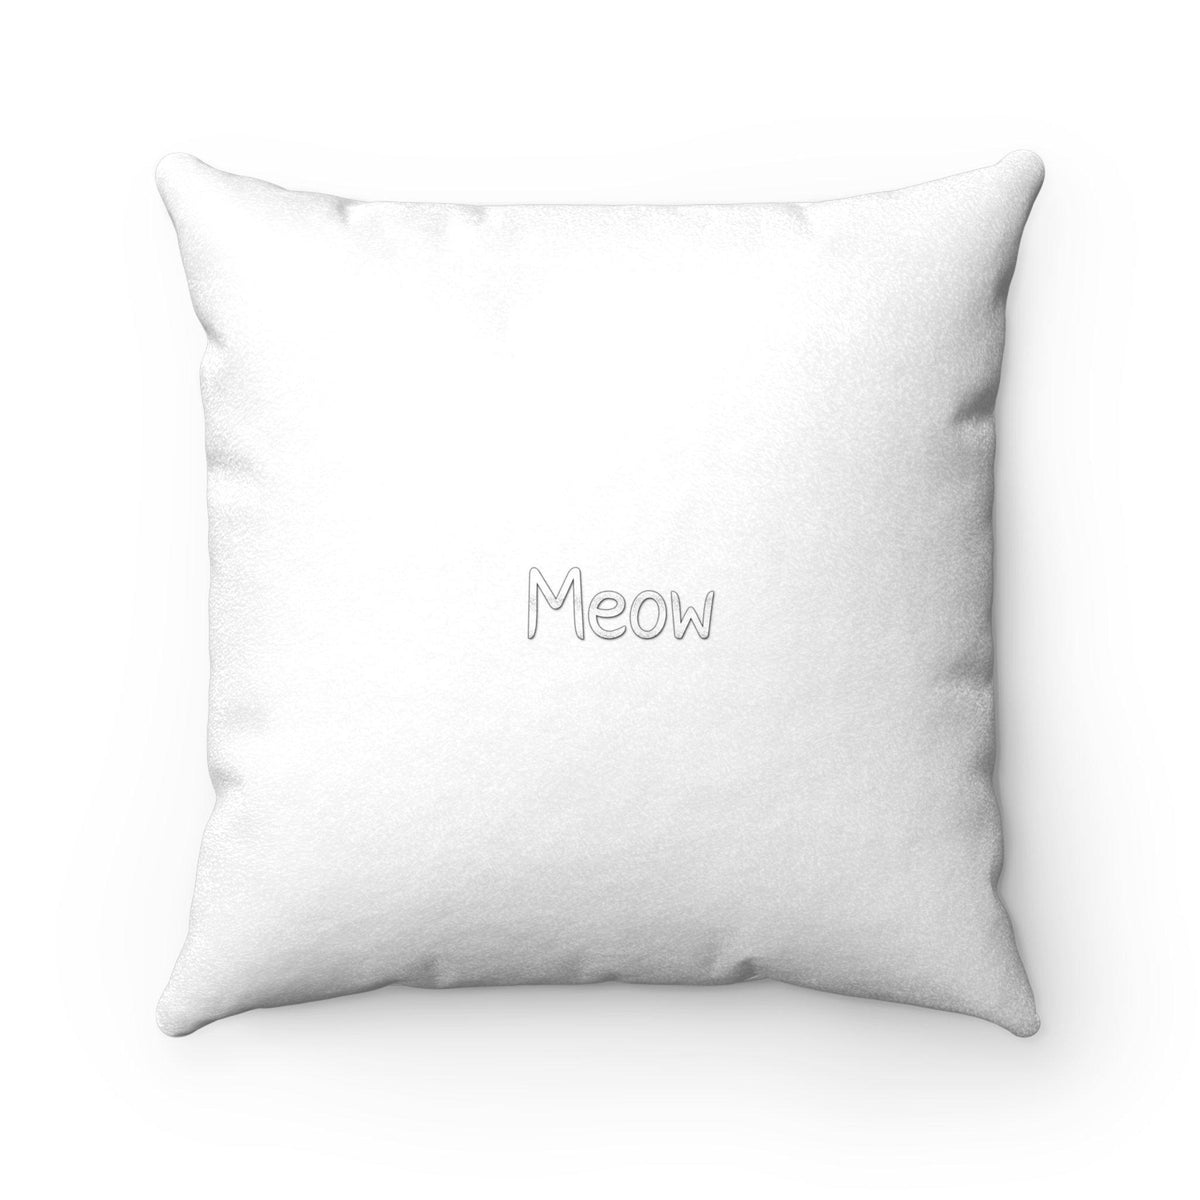 Maison d'Elite decorative cushion-Home Decor - Decorative Accents - Pillows & Throws - Decorative Pillows-Maison d'Elite-Très Elite